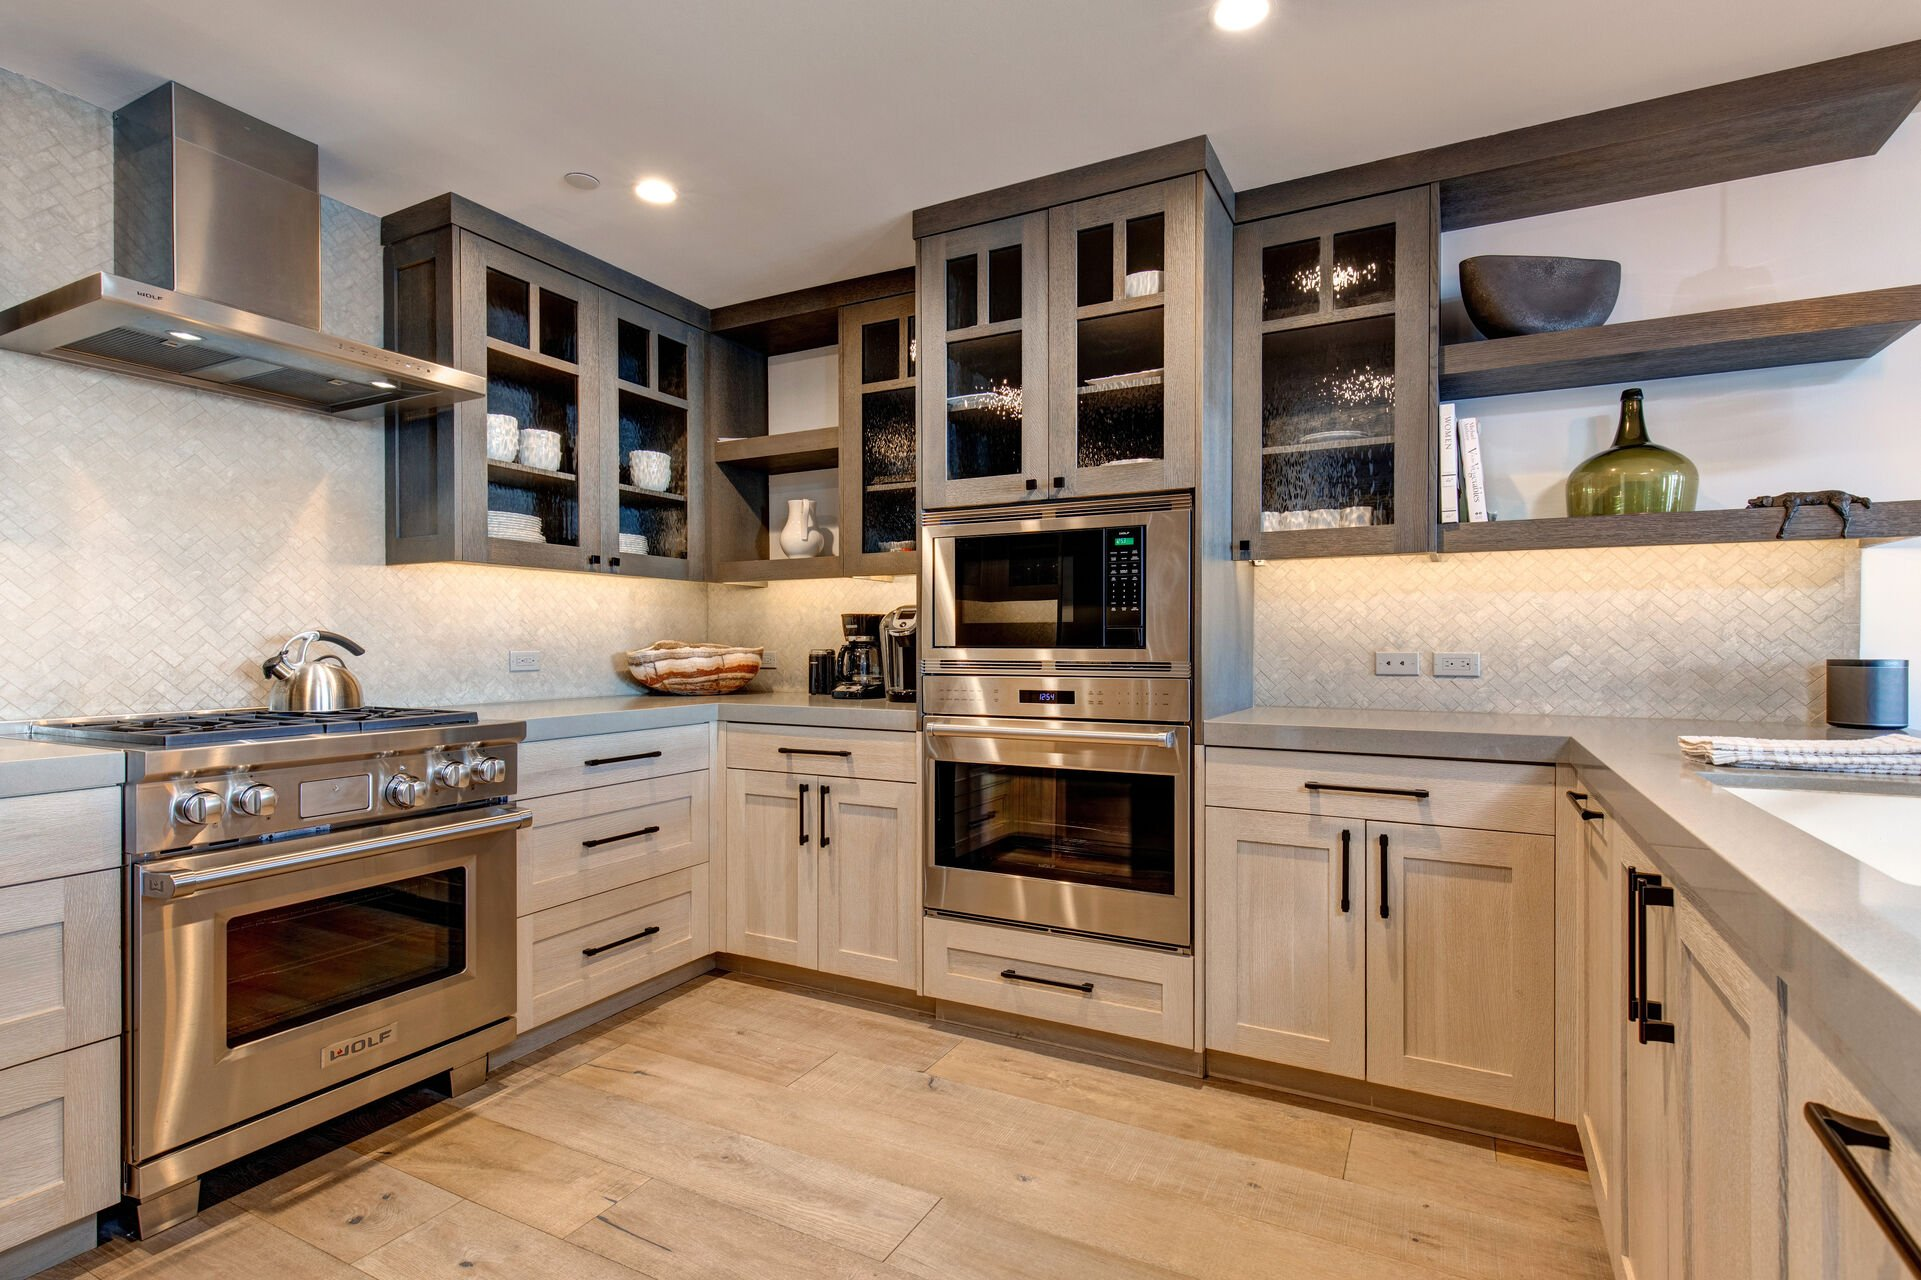 Fully Equipped Gourmet Kitchen with SubZero Refrigerator, Wolf Appliances, and High-End Finishes